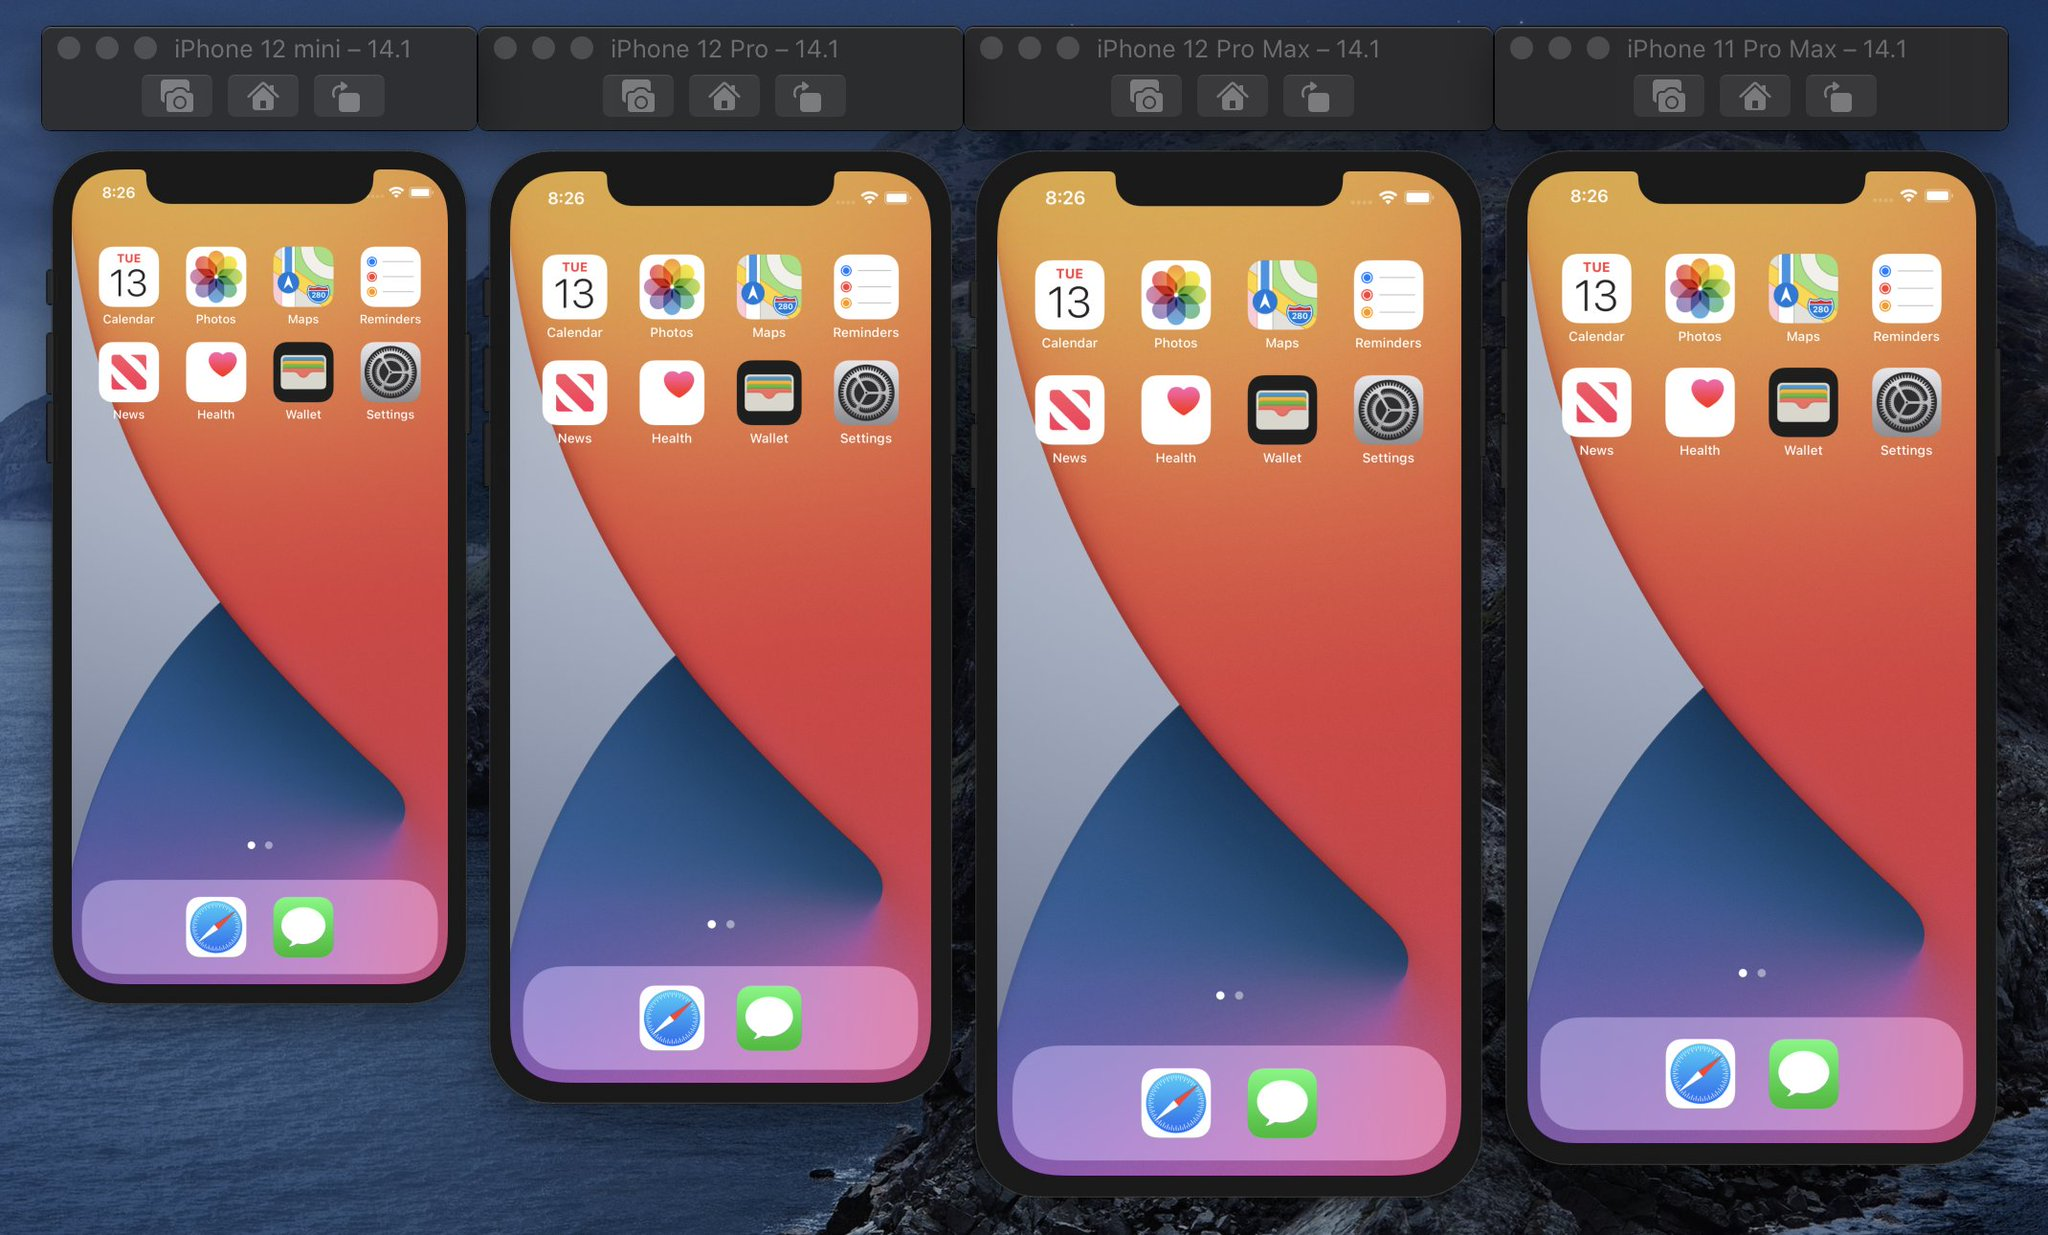 Paul Hudson On Twitter If You Run The Various Iphones In Simulator Using Physical Size Display You Can Get Some Idea Of How They Match Up Side By Side Nb That S An